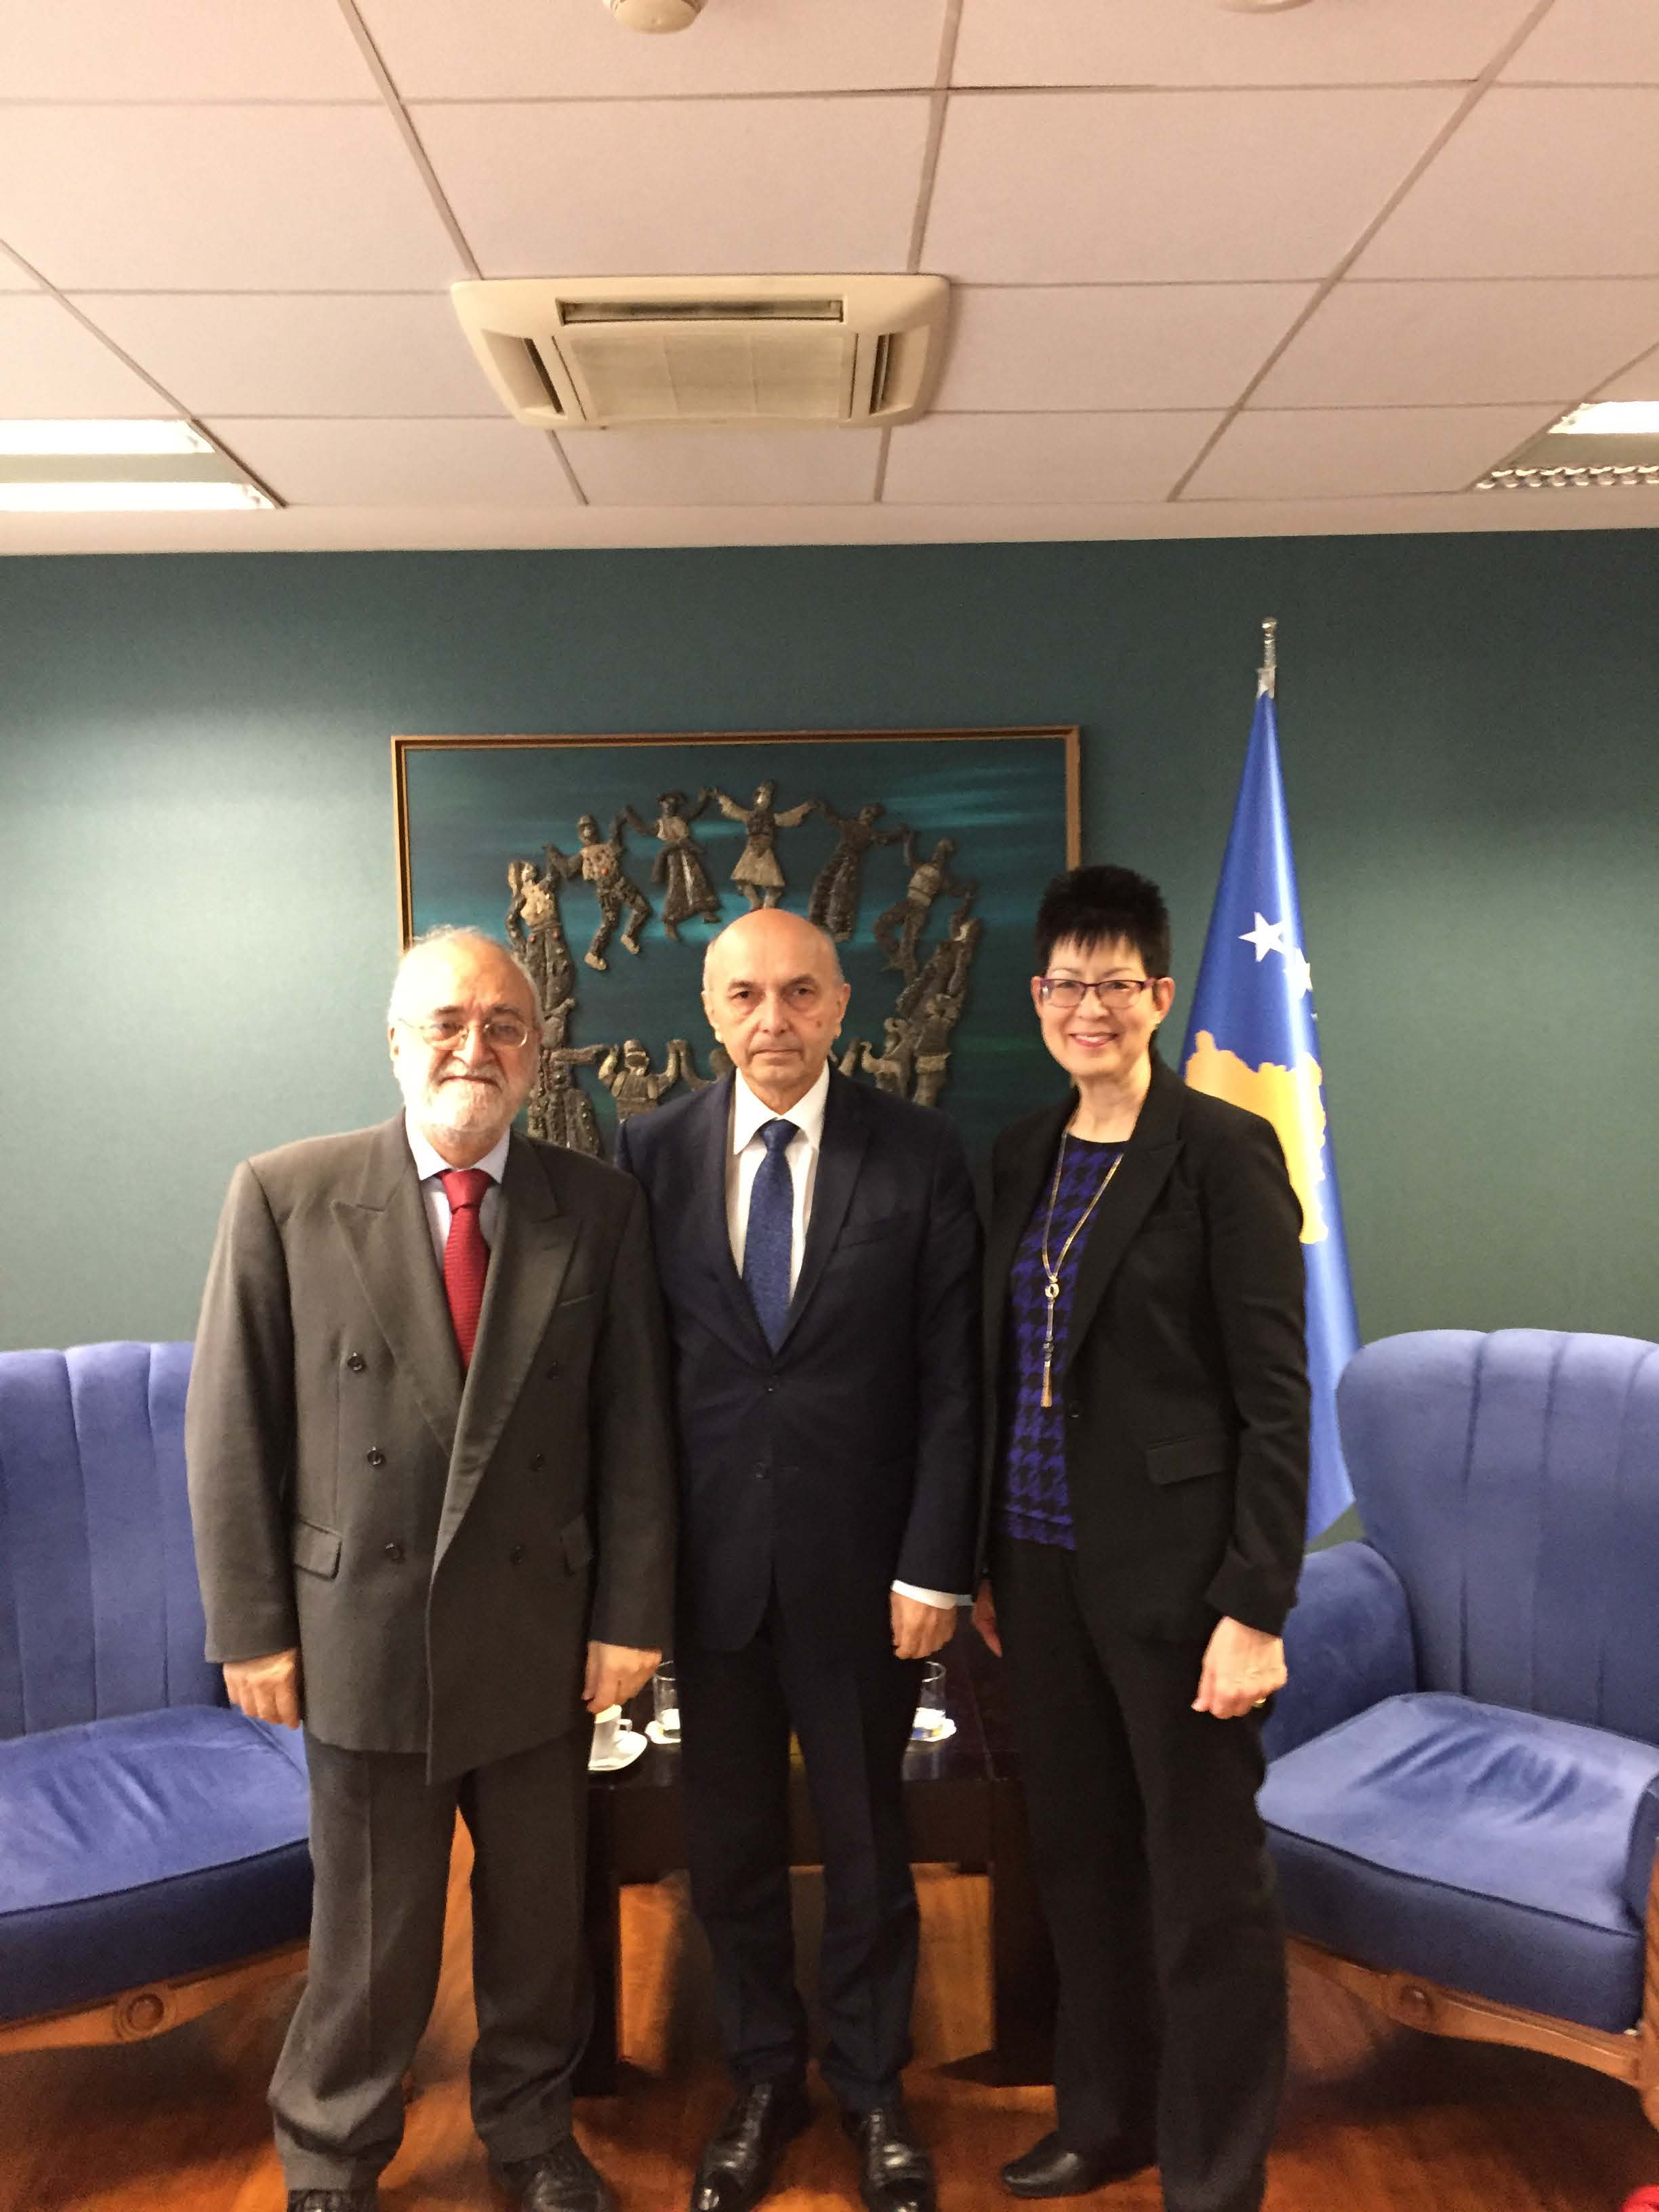 IH & JH with Prof Isa Mustafa (Prime Minister of Kosovo) Mar 17